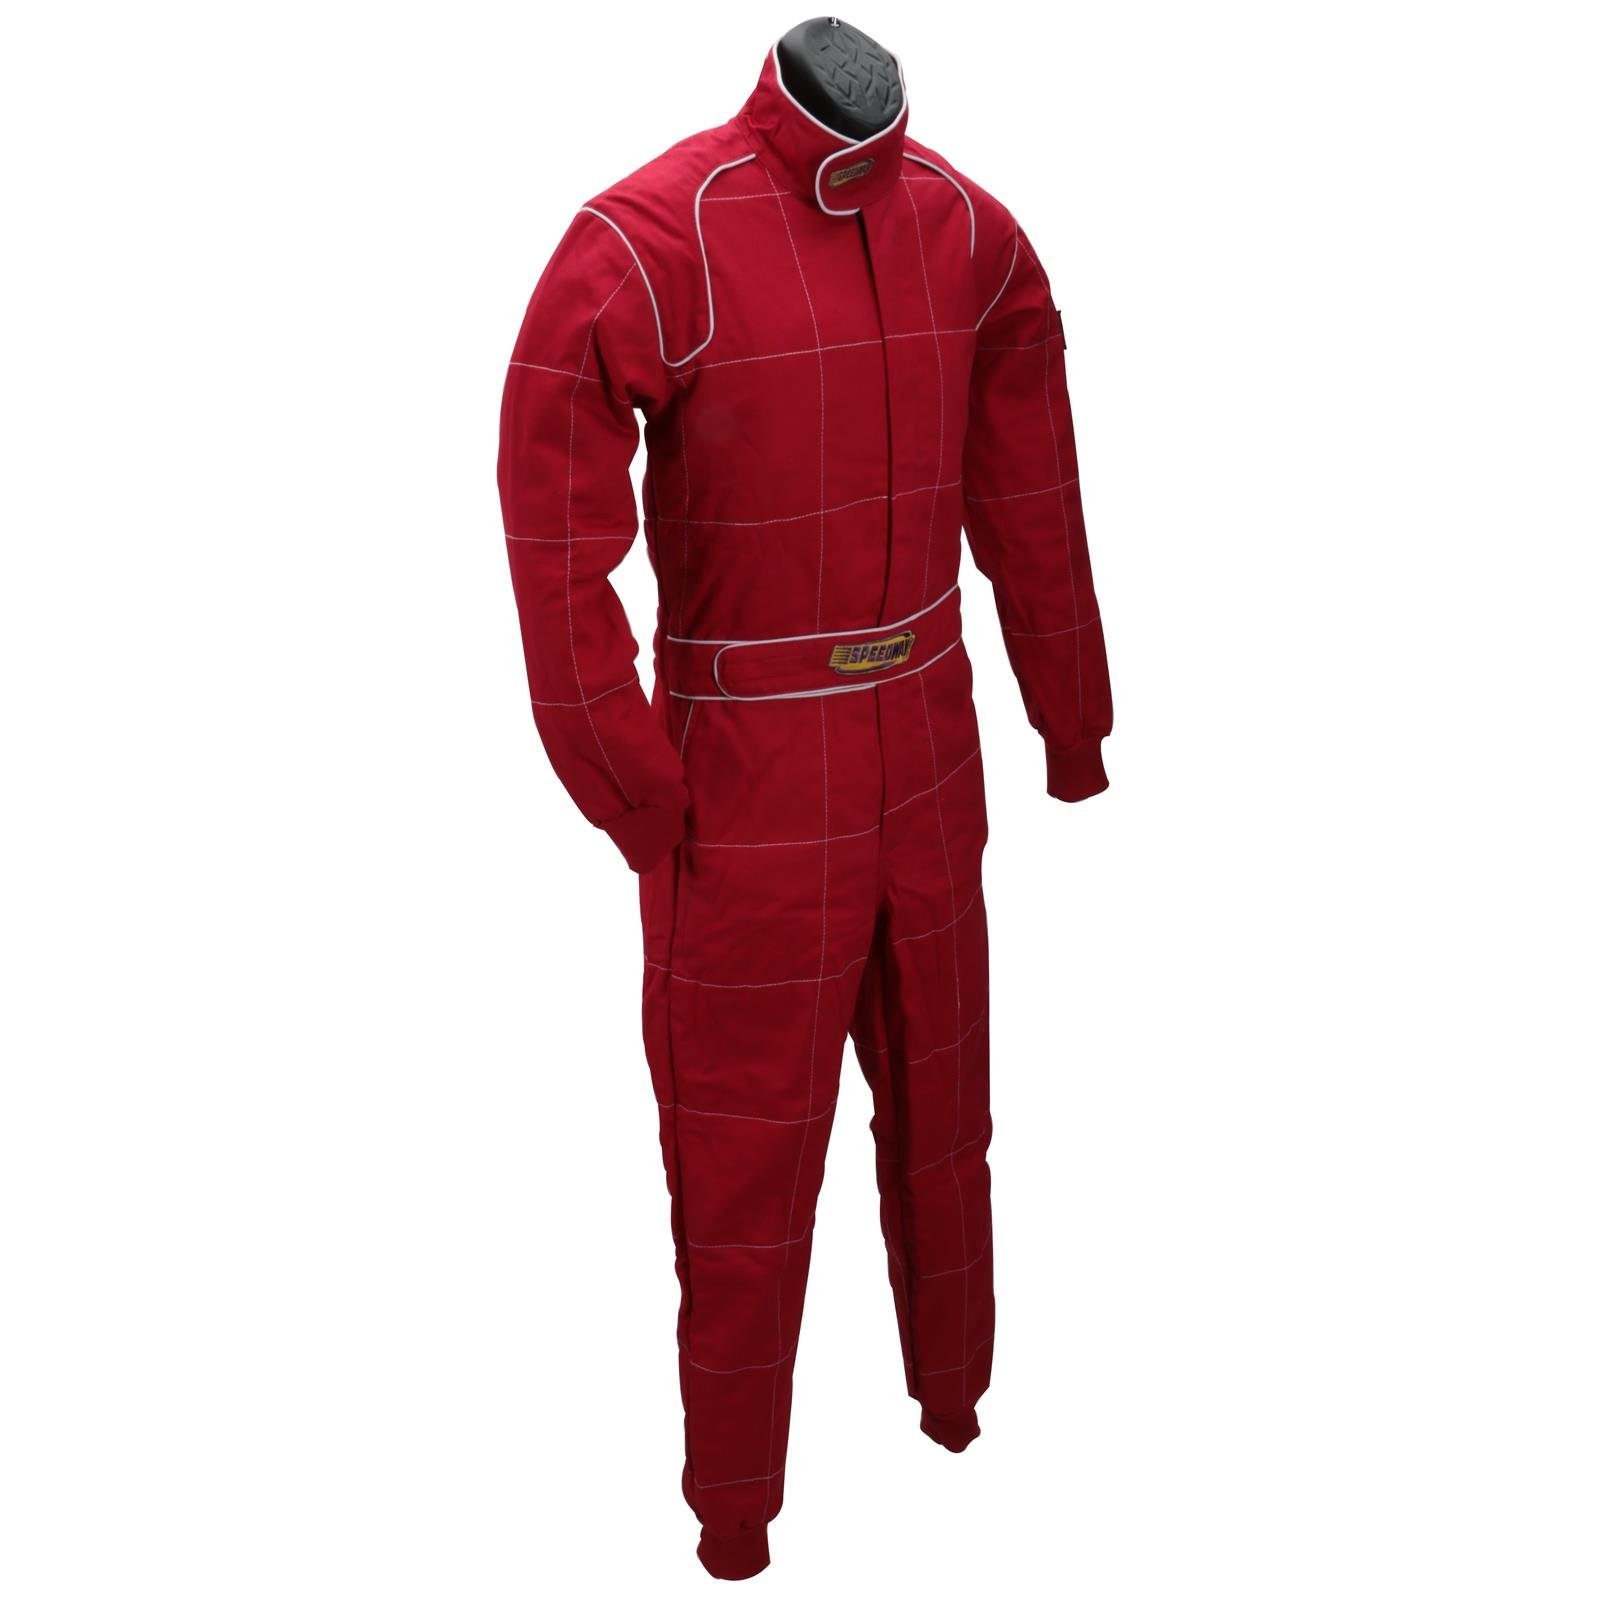 Blue 2 Layer Racing Suit-One Piece-SFI-5 Rated, Large